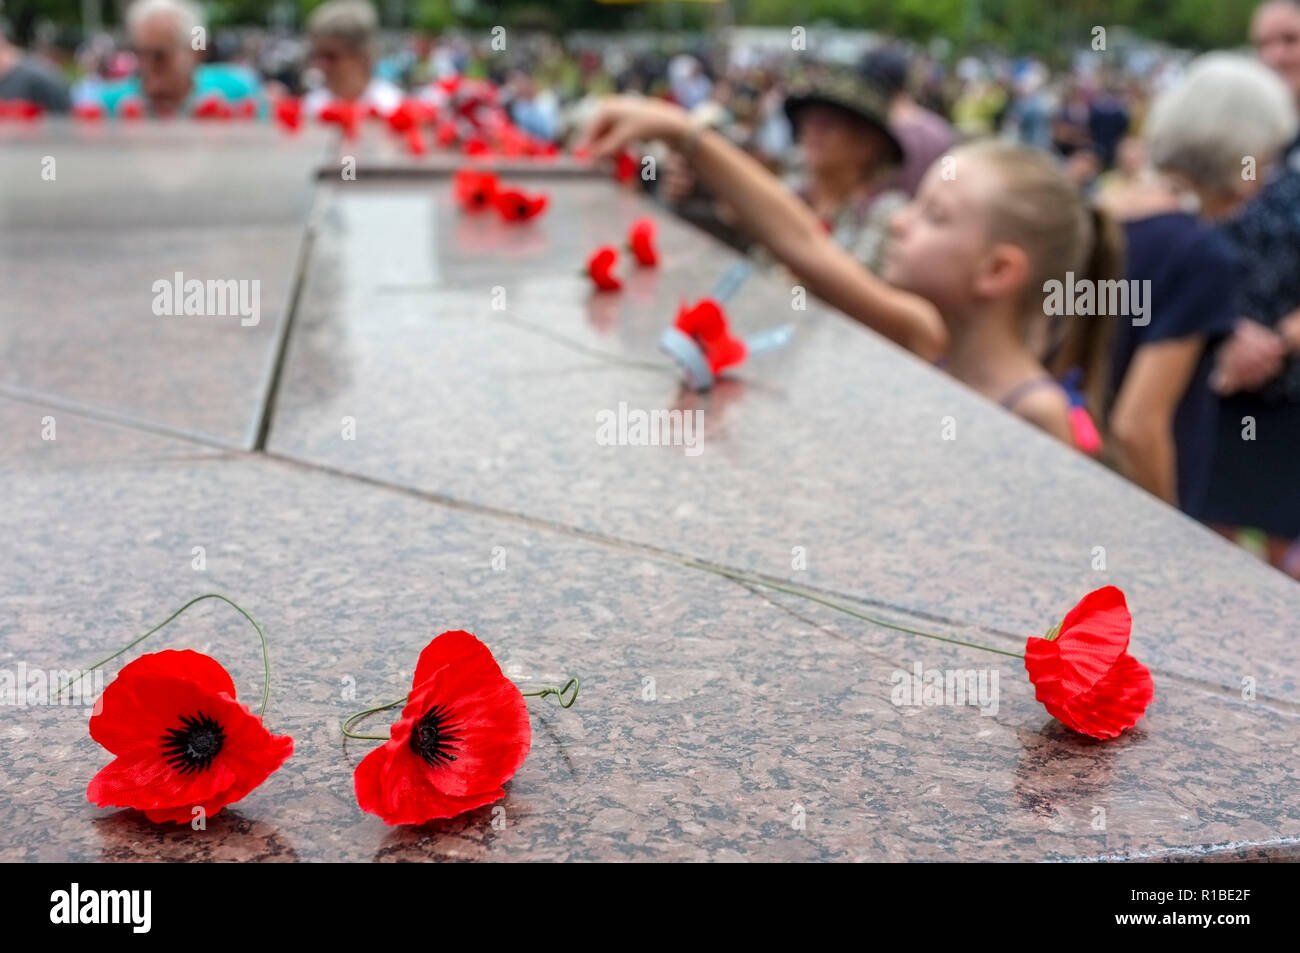 darwin-australia-11th-nov-2018-commemoration-for-remembrance-day-for-the-centenary-of-the-armistice-at-the-darwin-cenotaph-on-bicentennial-park-in-darwin-northern-territory-australia-20181111-photo-by-regis-martin-credit-regis-martinalamy-live-news-R1BE2F.jpg